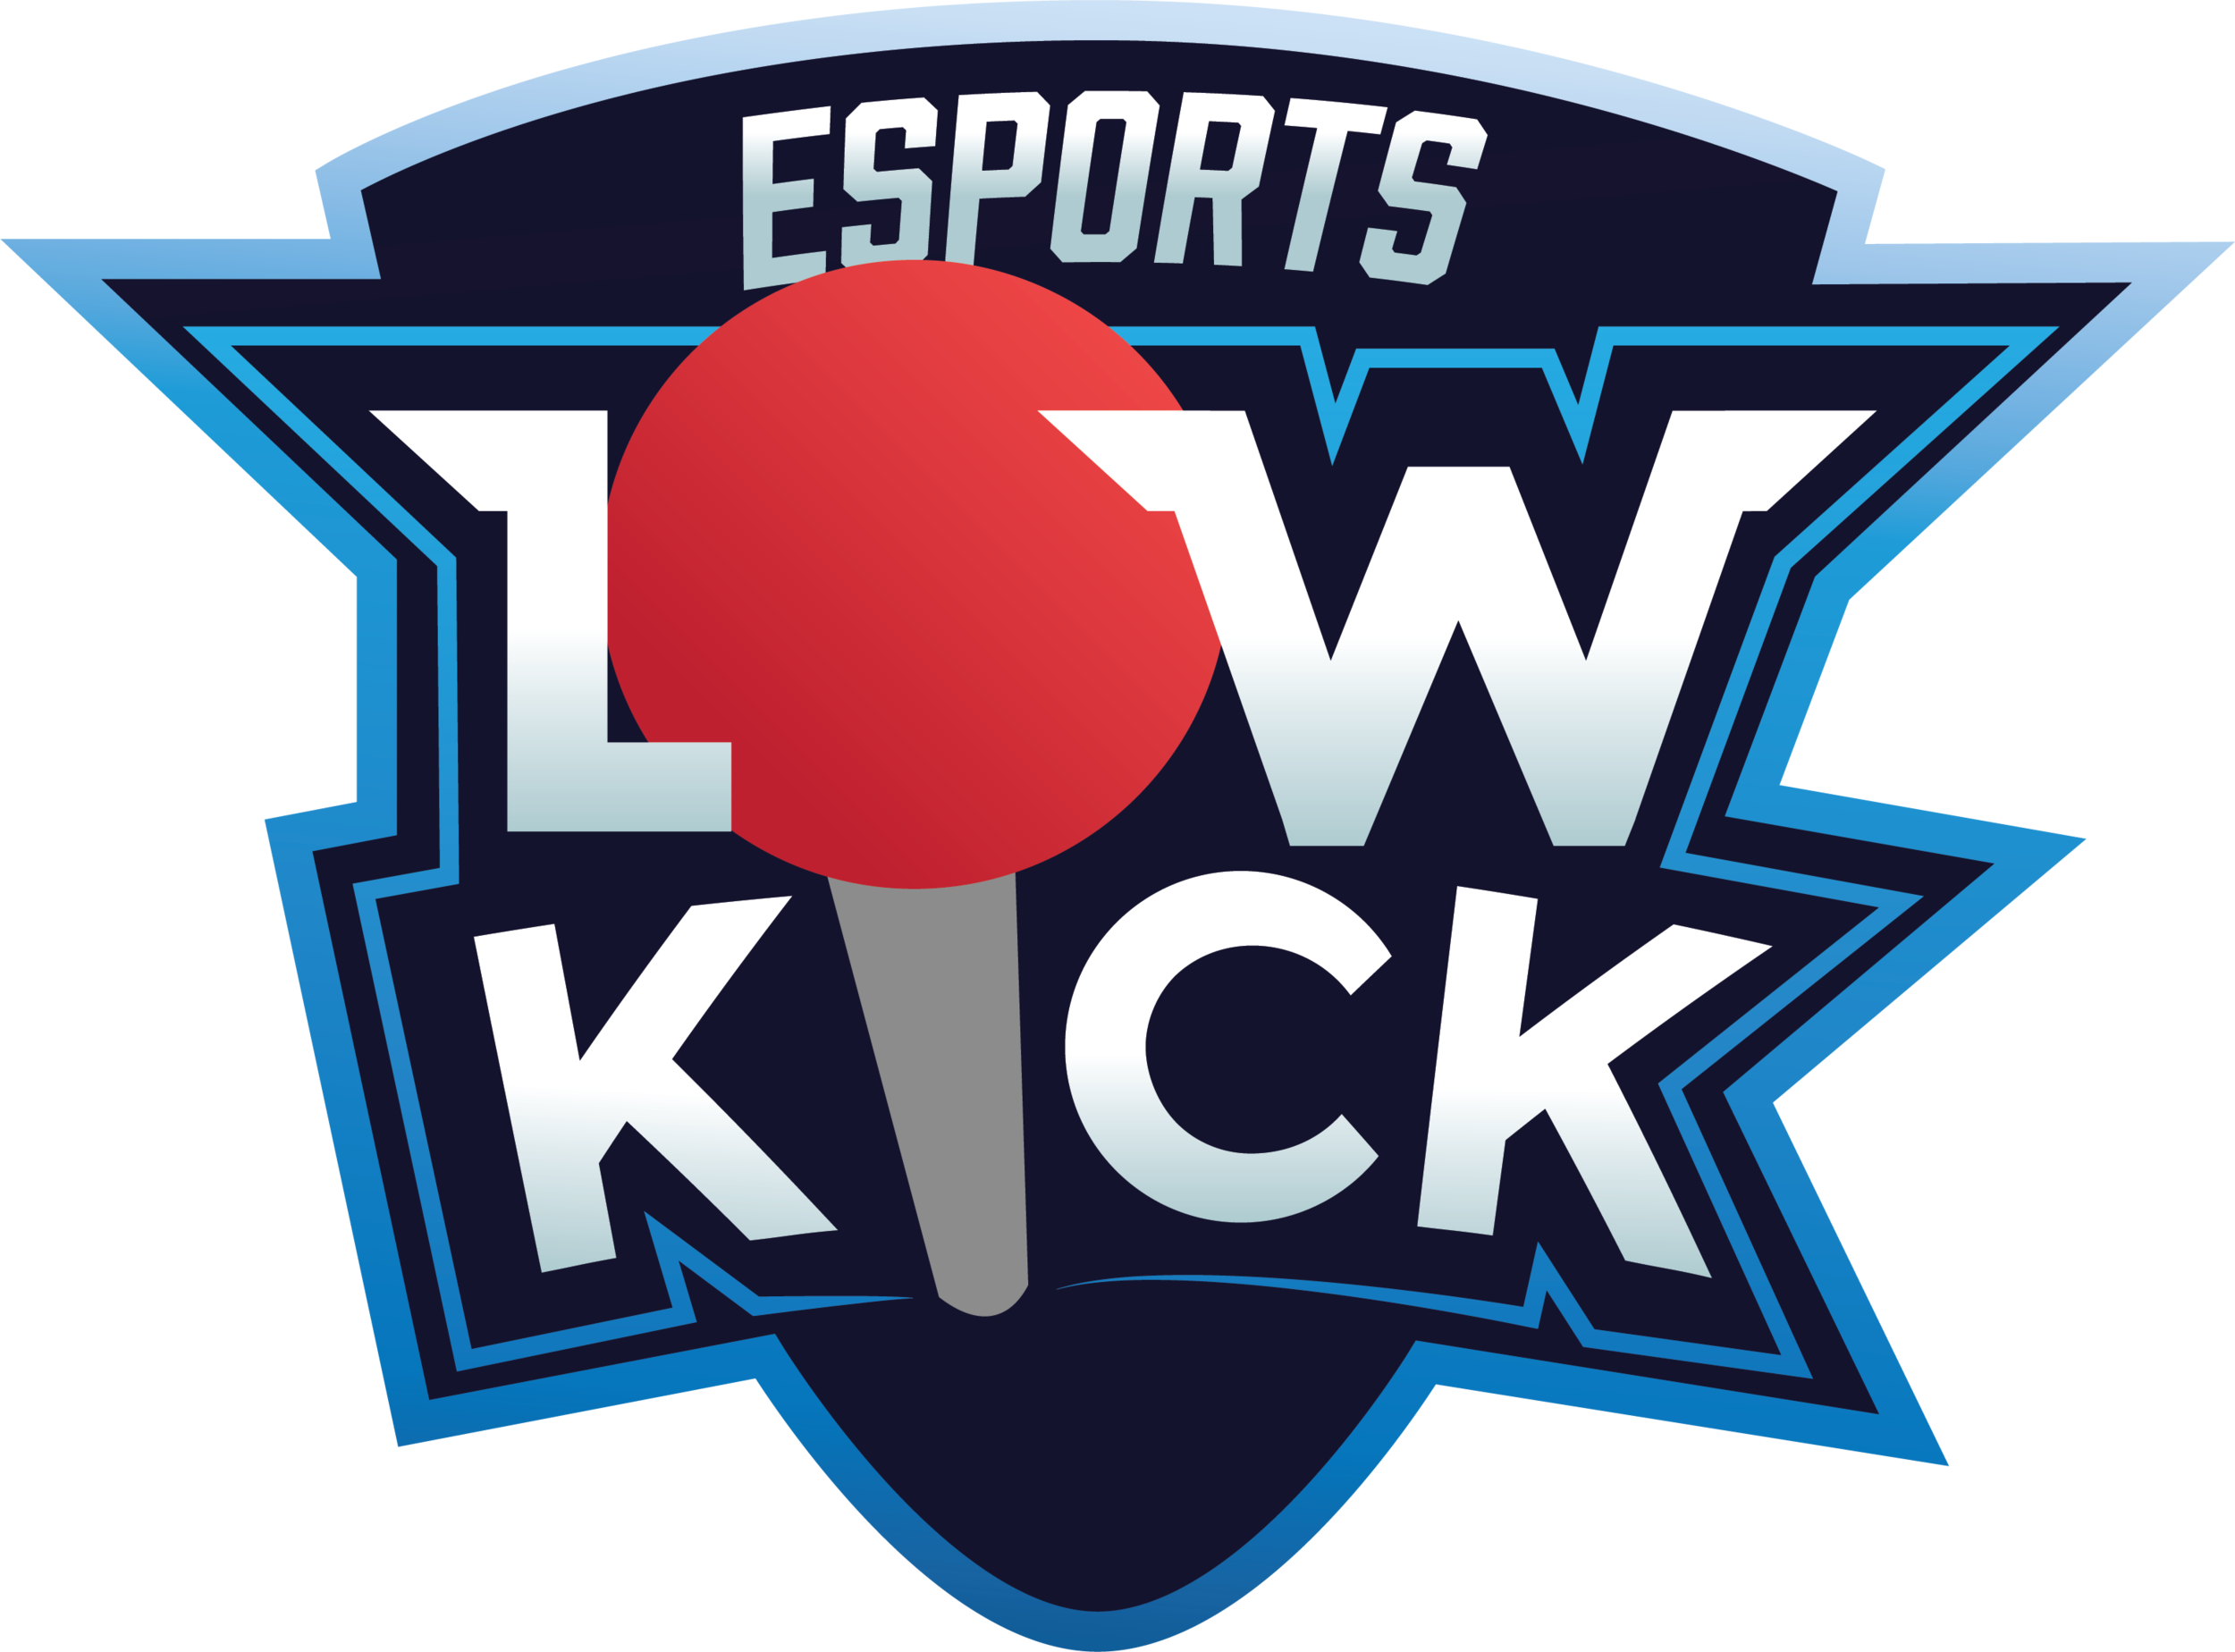 LowKick - Low kick brings about community friendly events and tournaments to the Chicago/Midwest fighting game community.Visit Twitch.